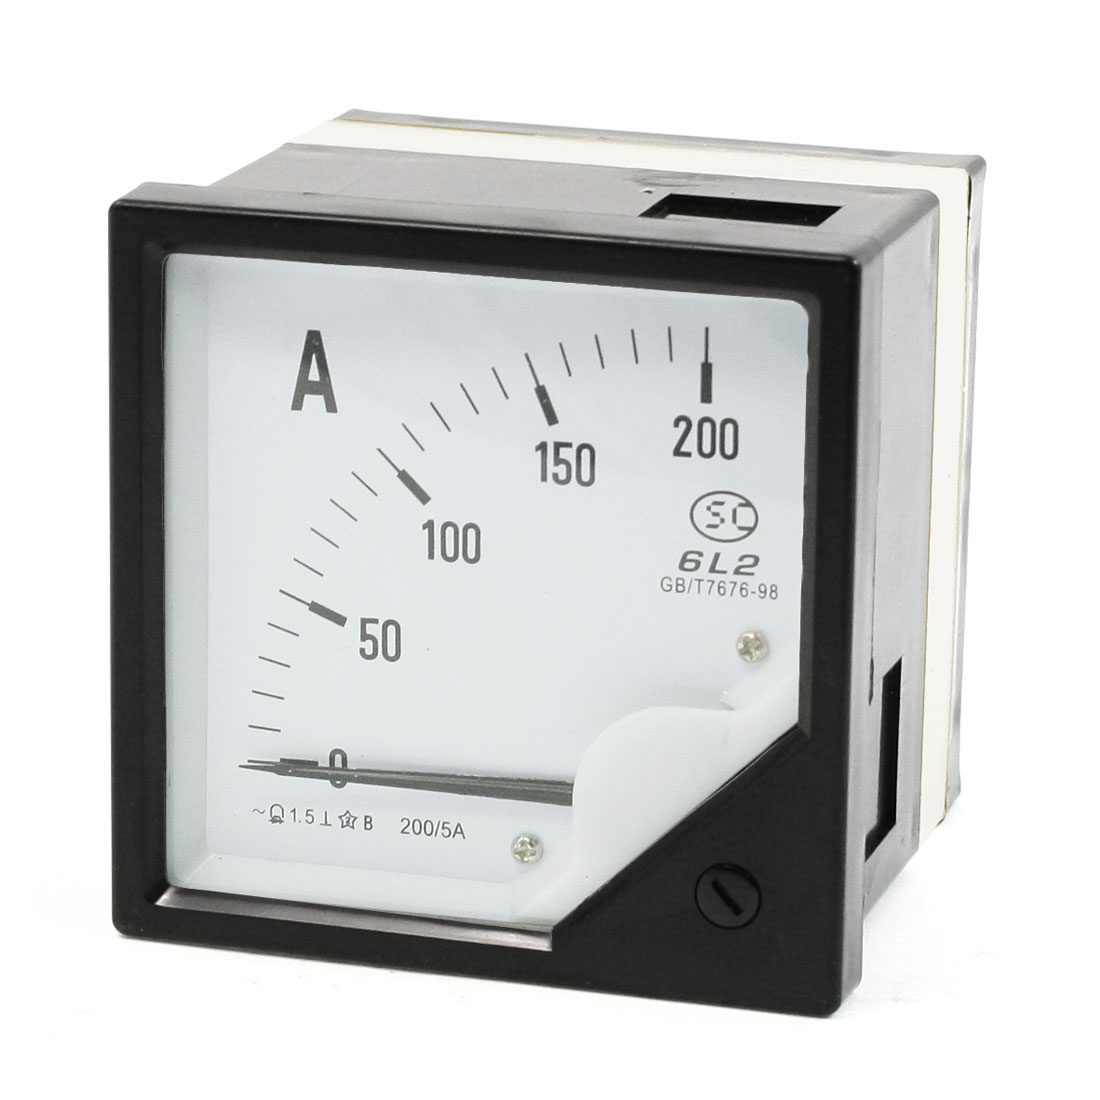 0-200A Analogue AC Ammeter Current Panel Meter 6L2 1.5 Accuracy